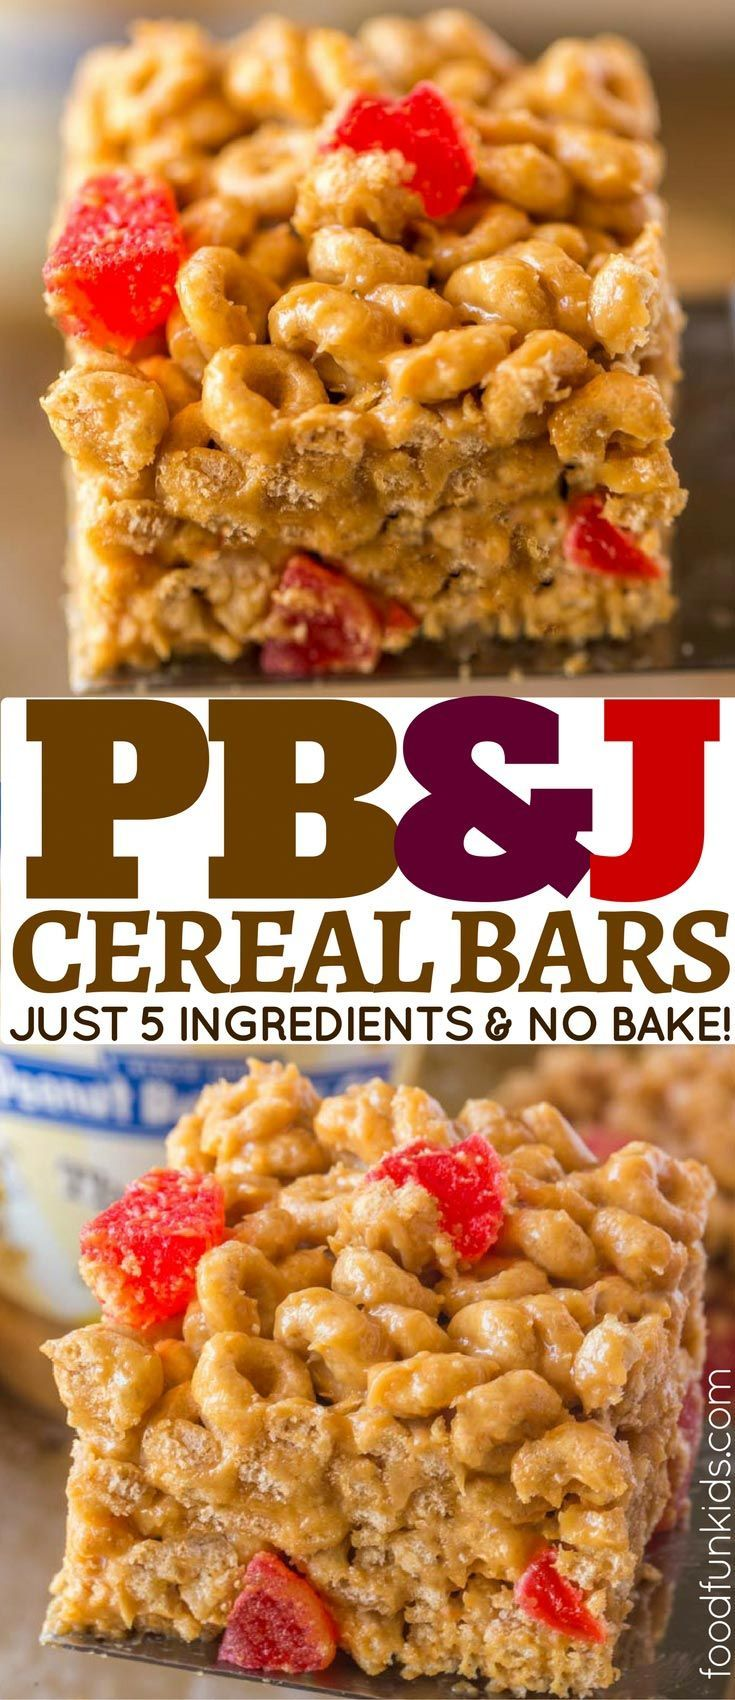 Peanut Butter and Jelly Cereal Bars with just five ingredients are the easiest no-bake school lunch snack your kids will LOVE!